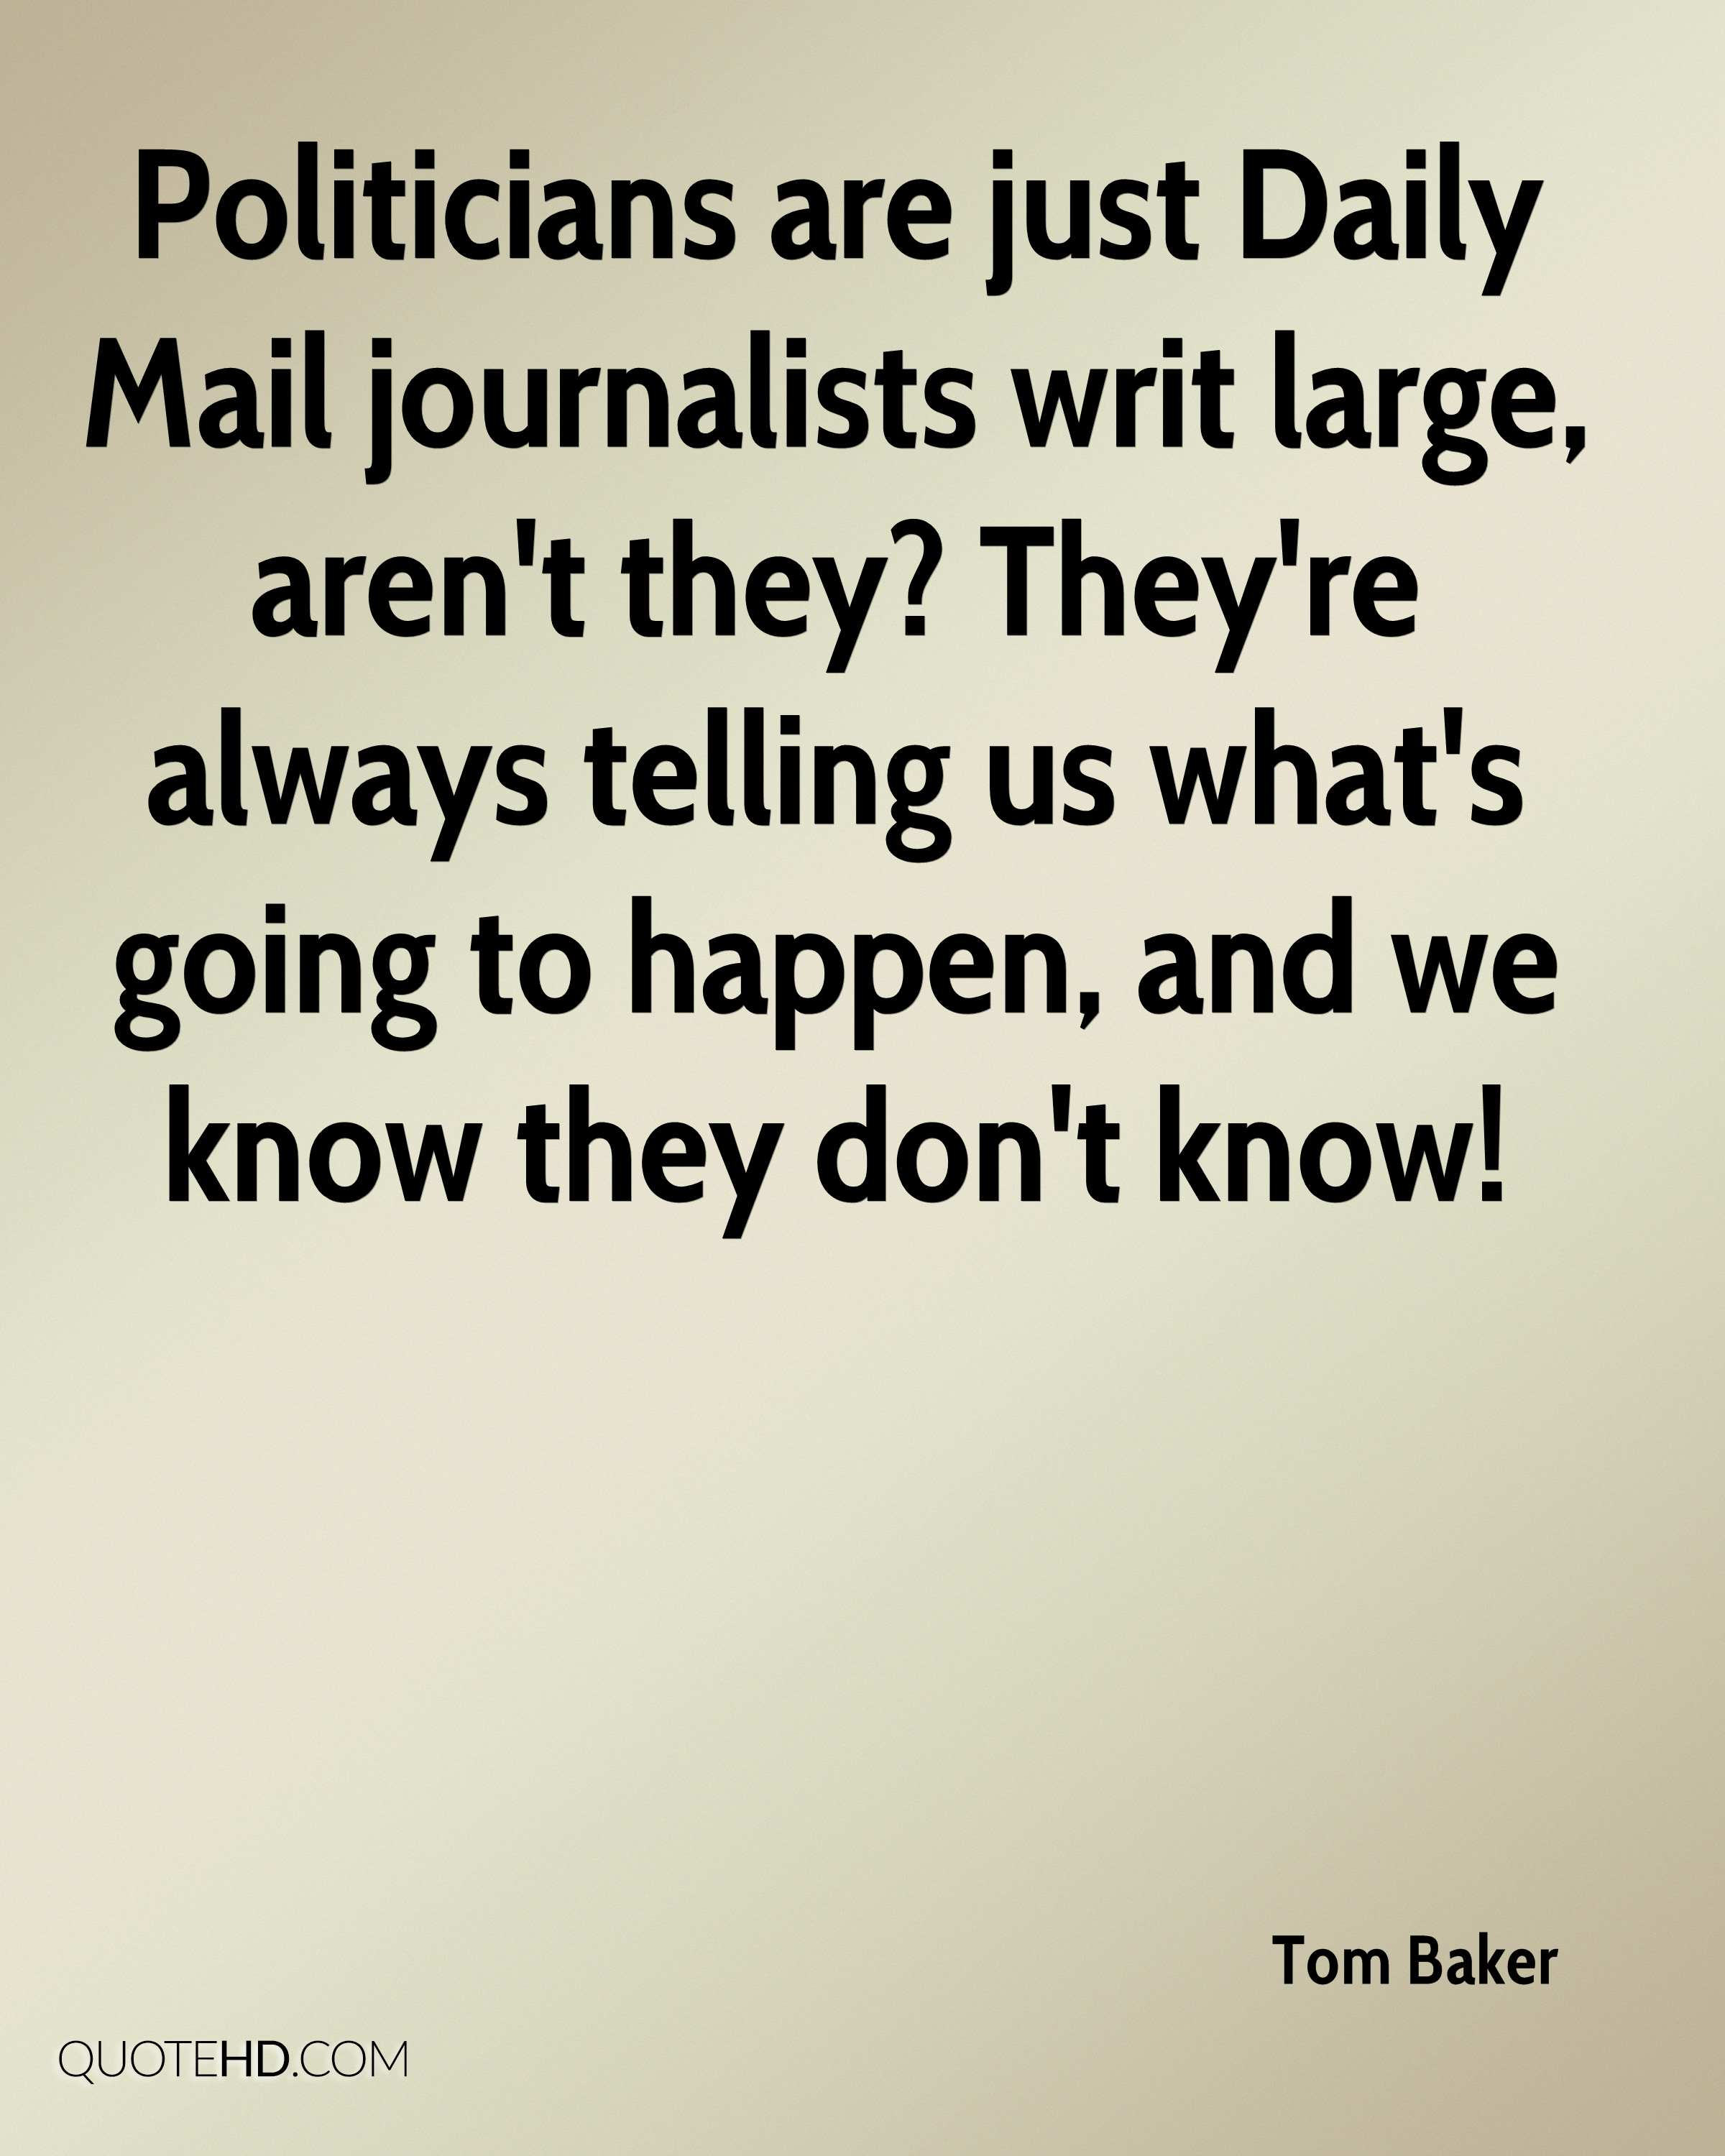 Politicians are just Daily Mail journalists writ large, aren't they? They're always telling us what's going to happen, and we know they don't know!